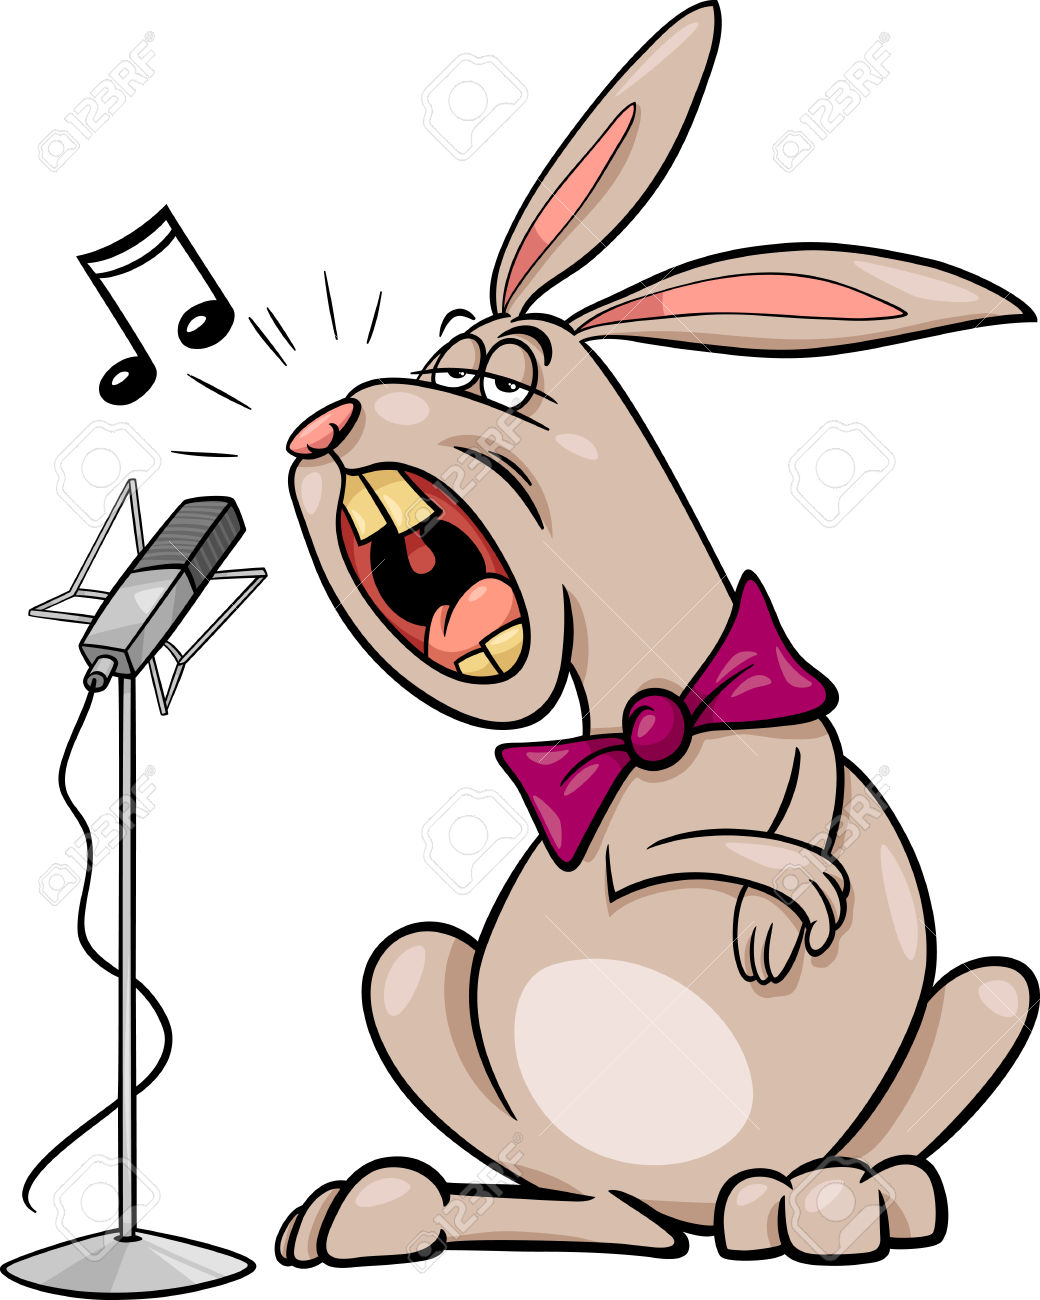 Cartoon Illustration Of Funny Singing Rabbit Character Royalty.